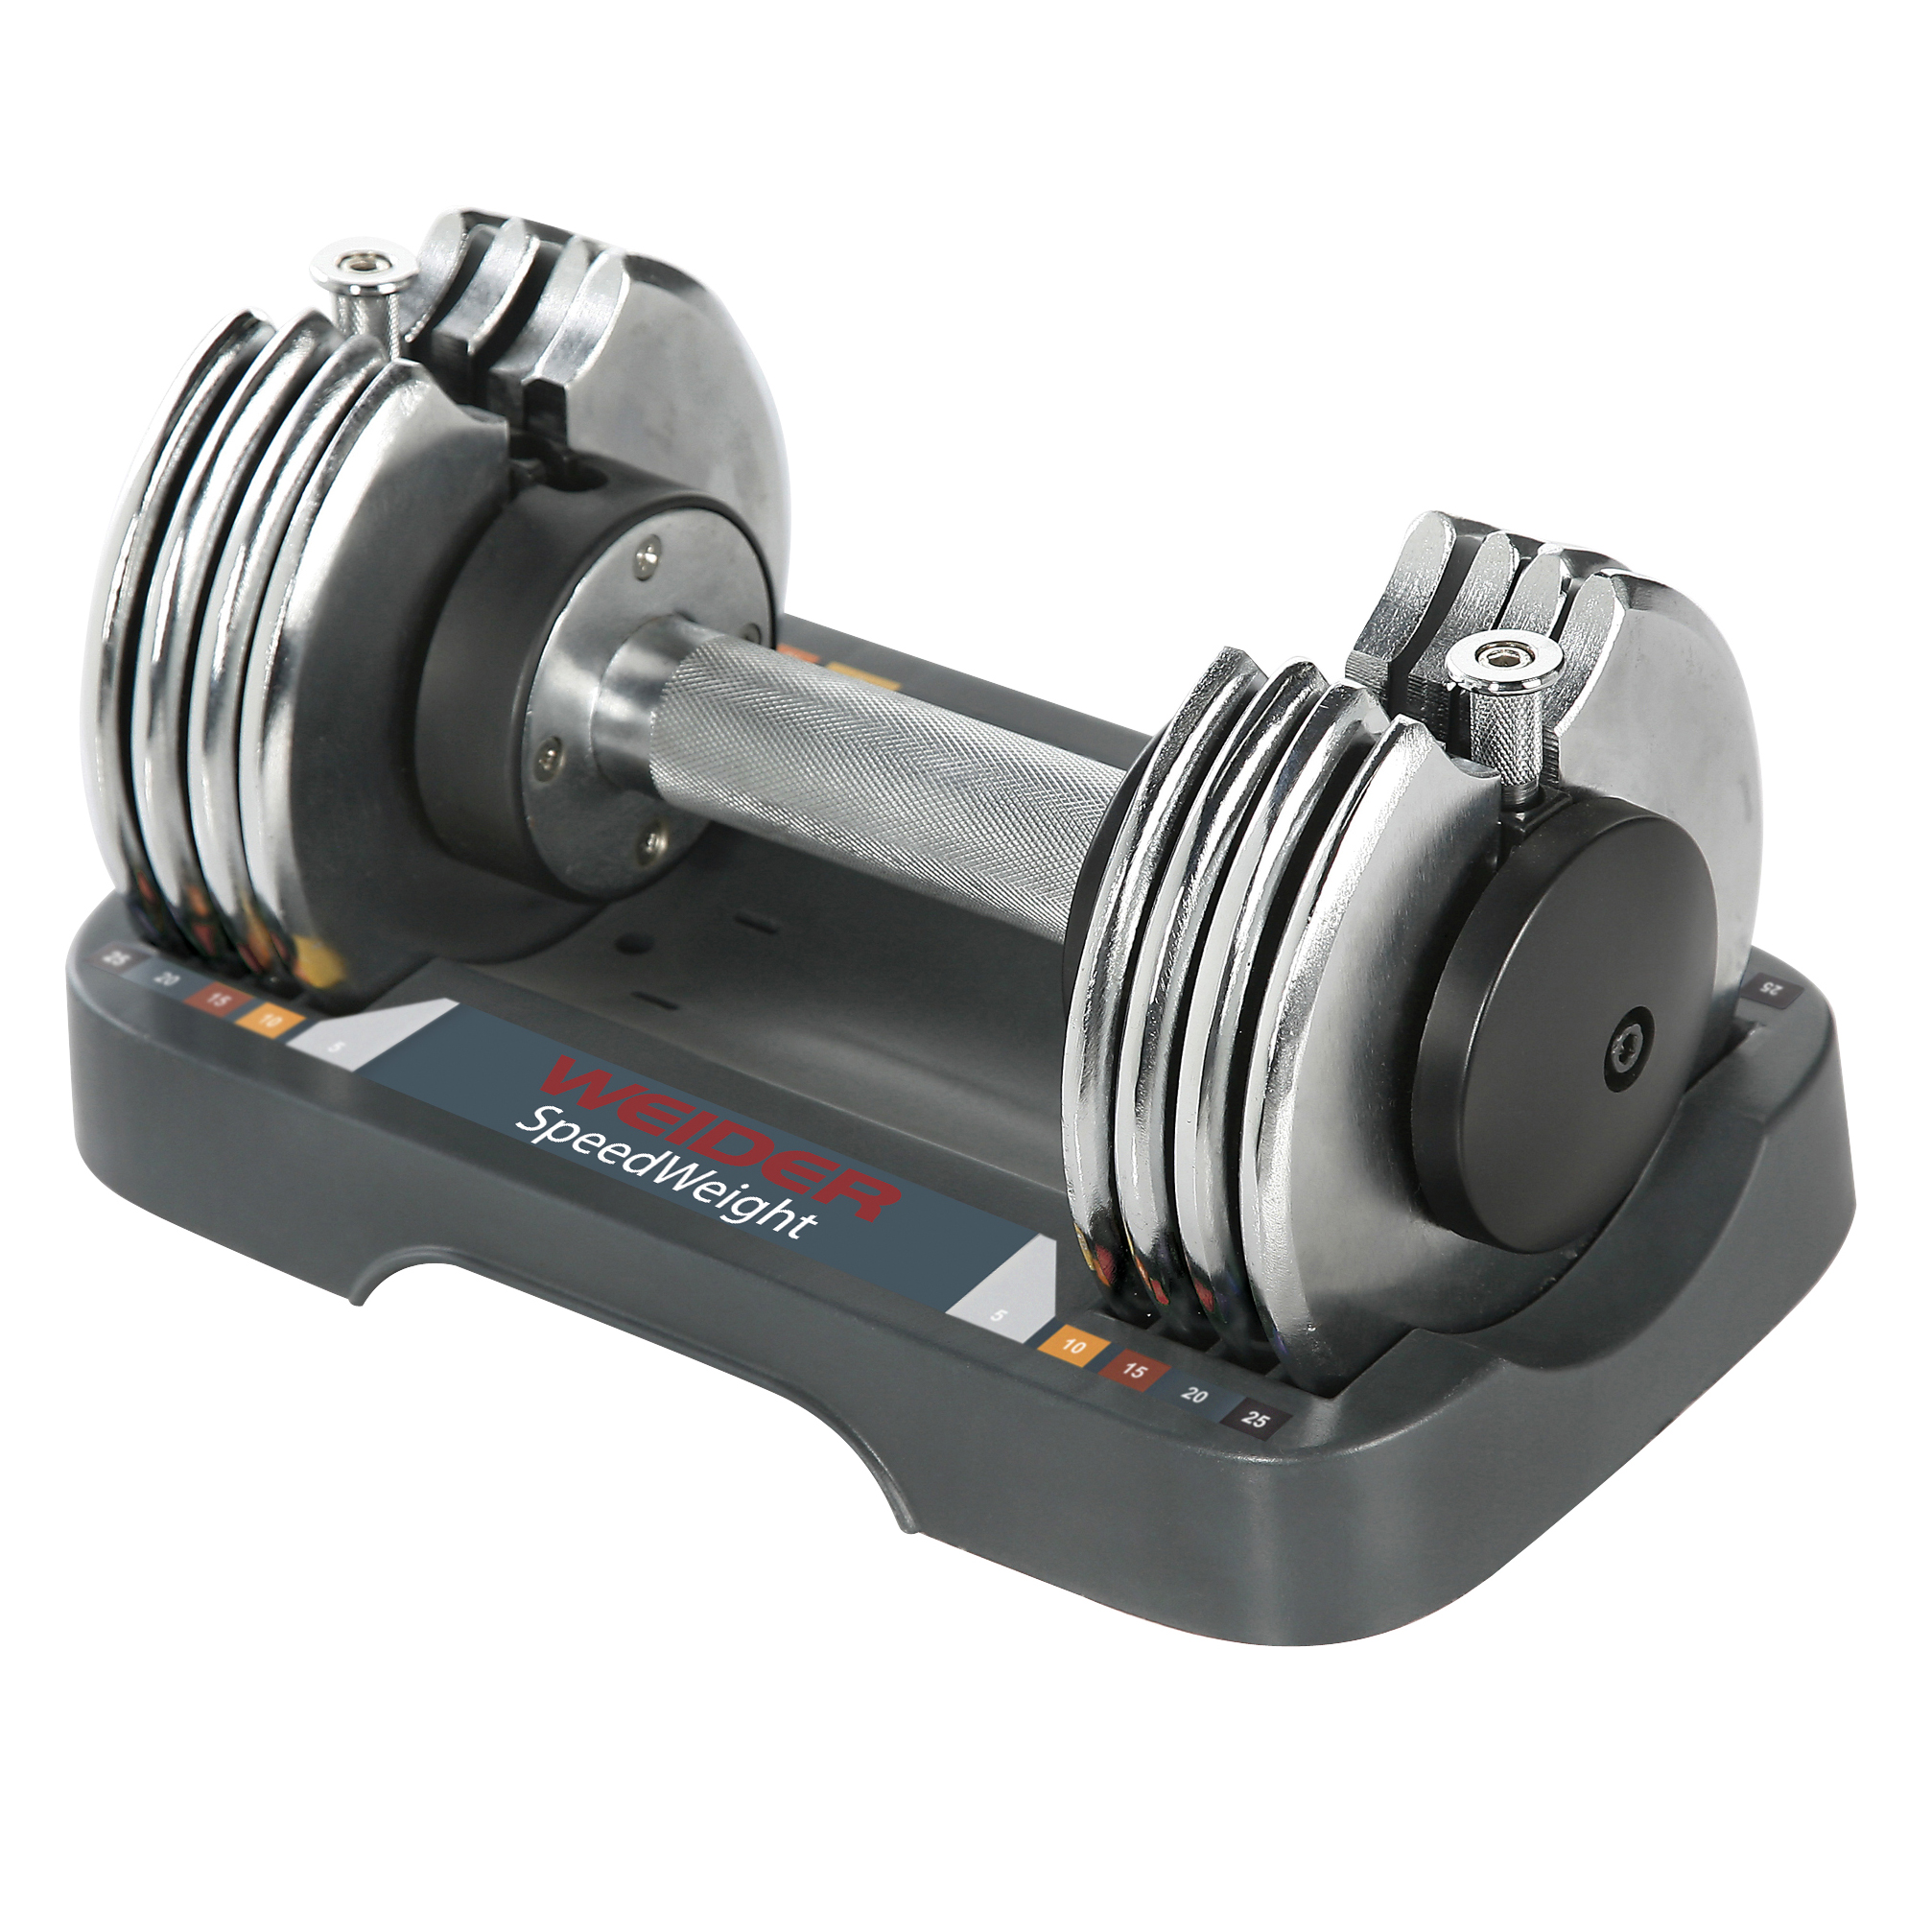 Weider Adjustable Dumbbell 25lbs, Single